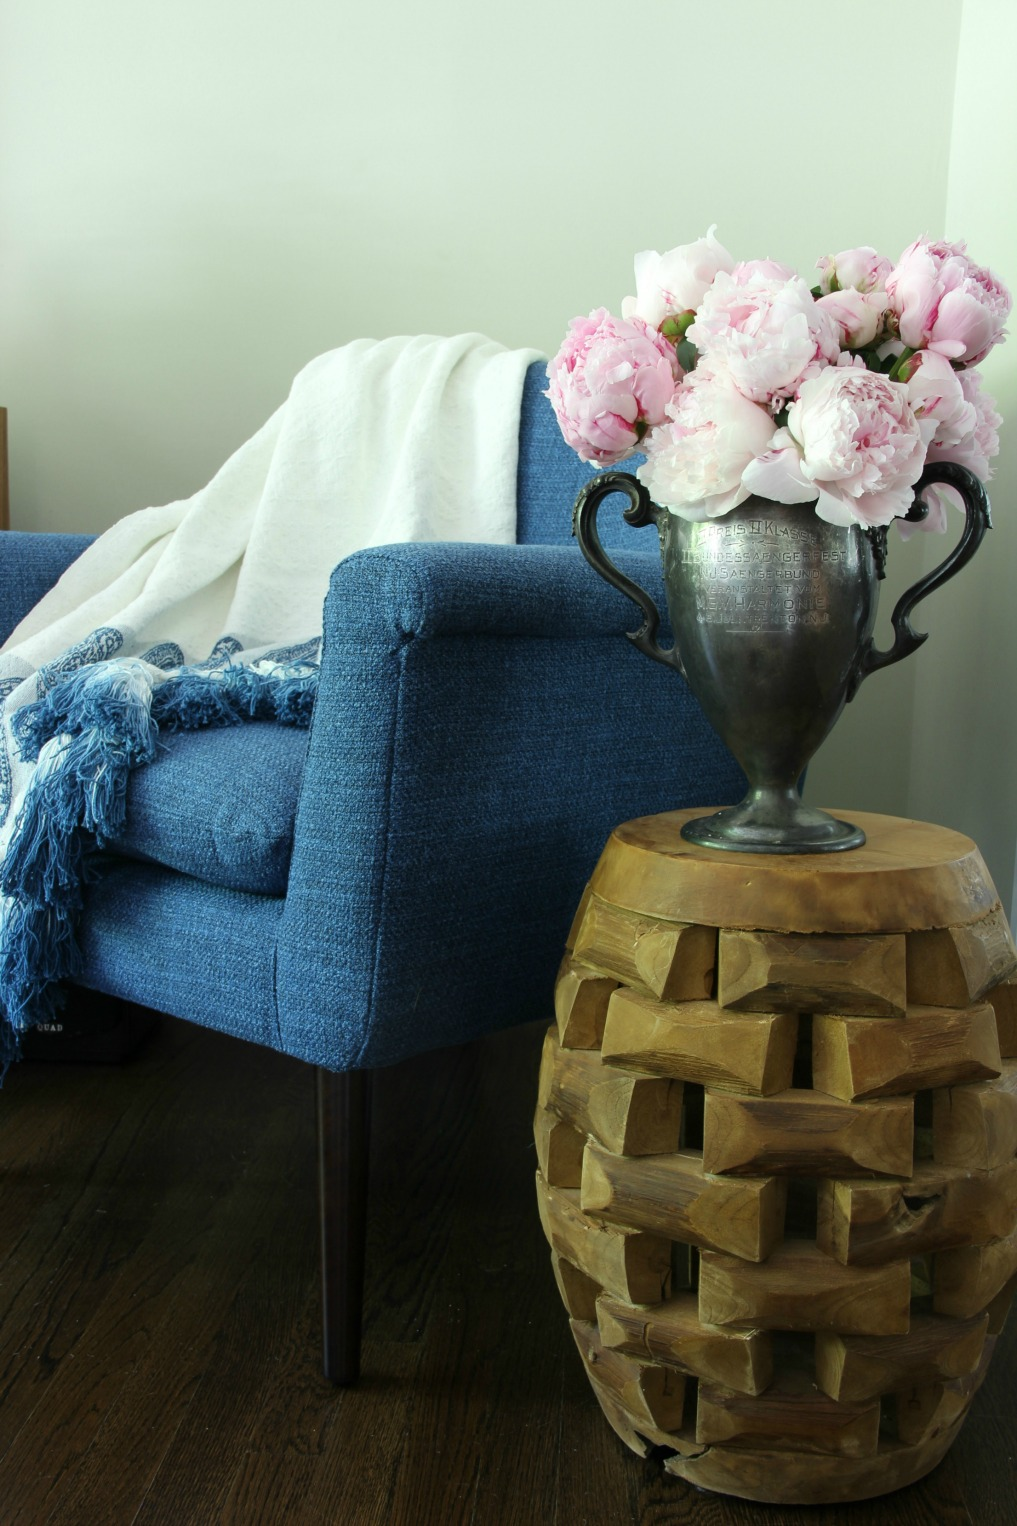 Cozy corner with blue mid chair, tassel throw and stunning bouquet of pink peonies kellyelko.com